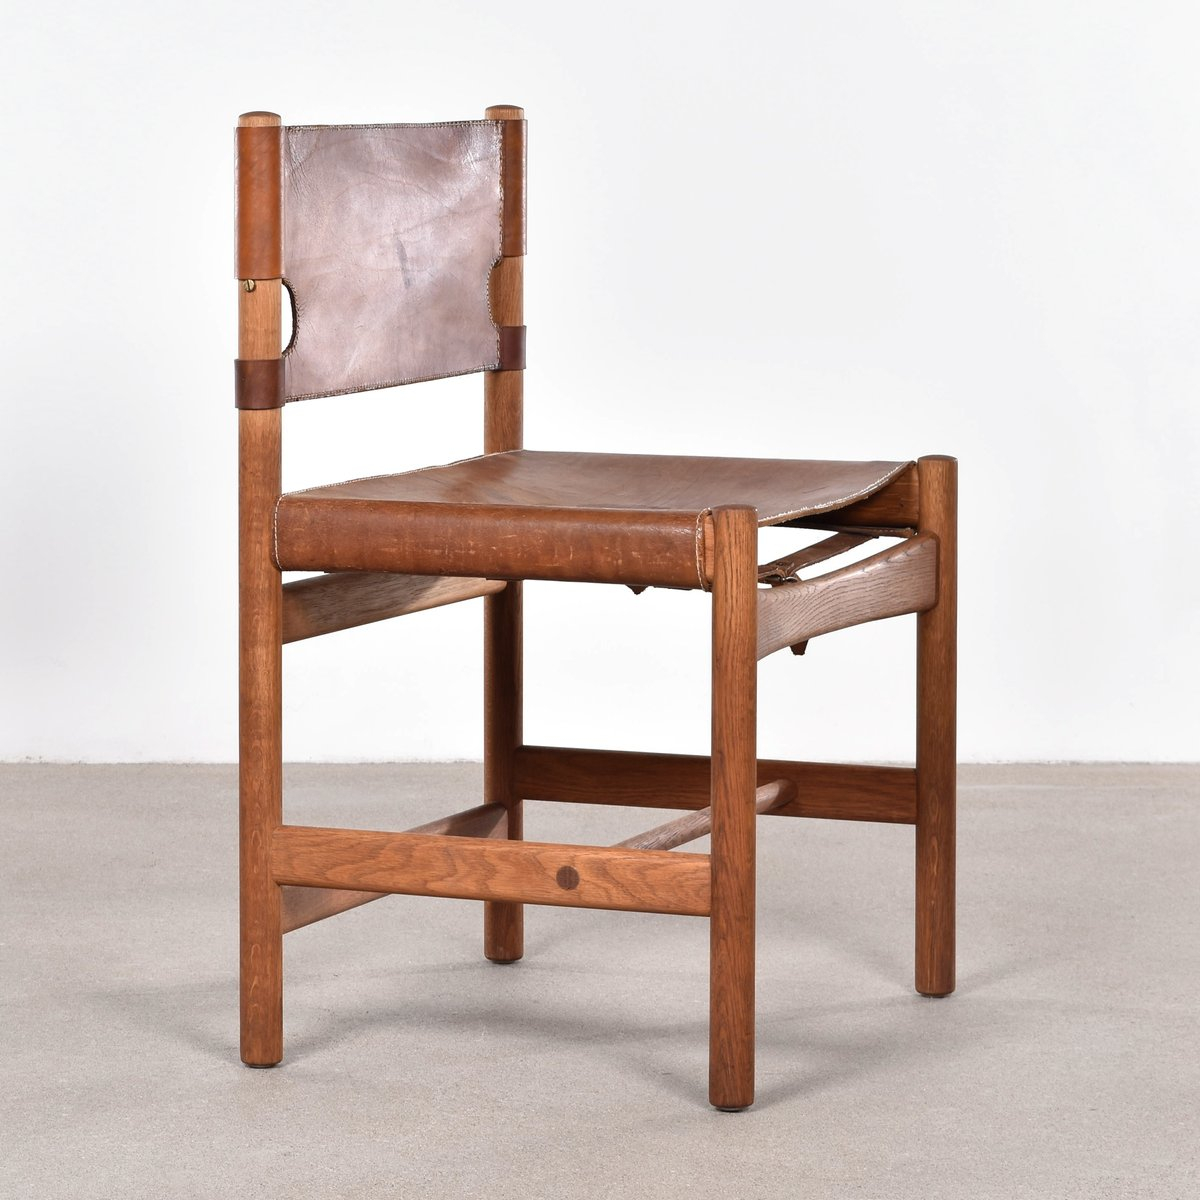 Century Furniture Sale: Mid-Century Model 3251 Hunting Chair By Børge Mogensen For